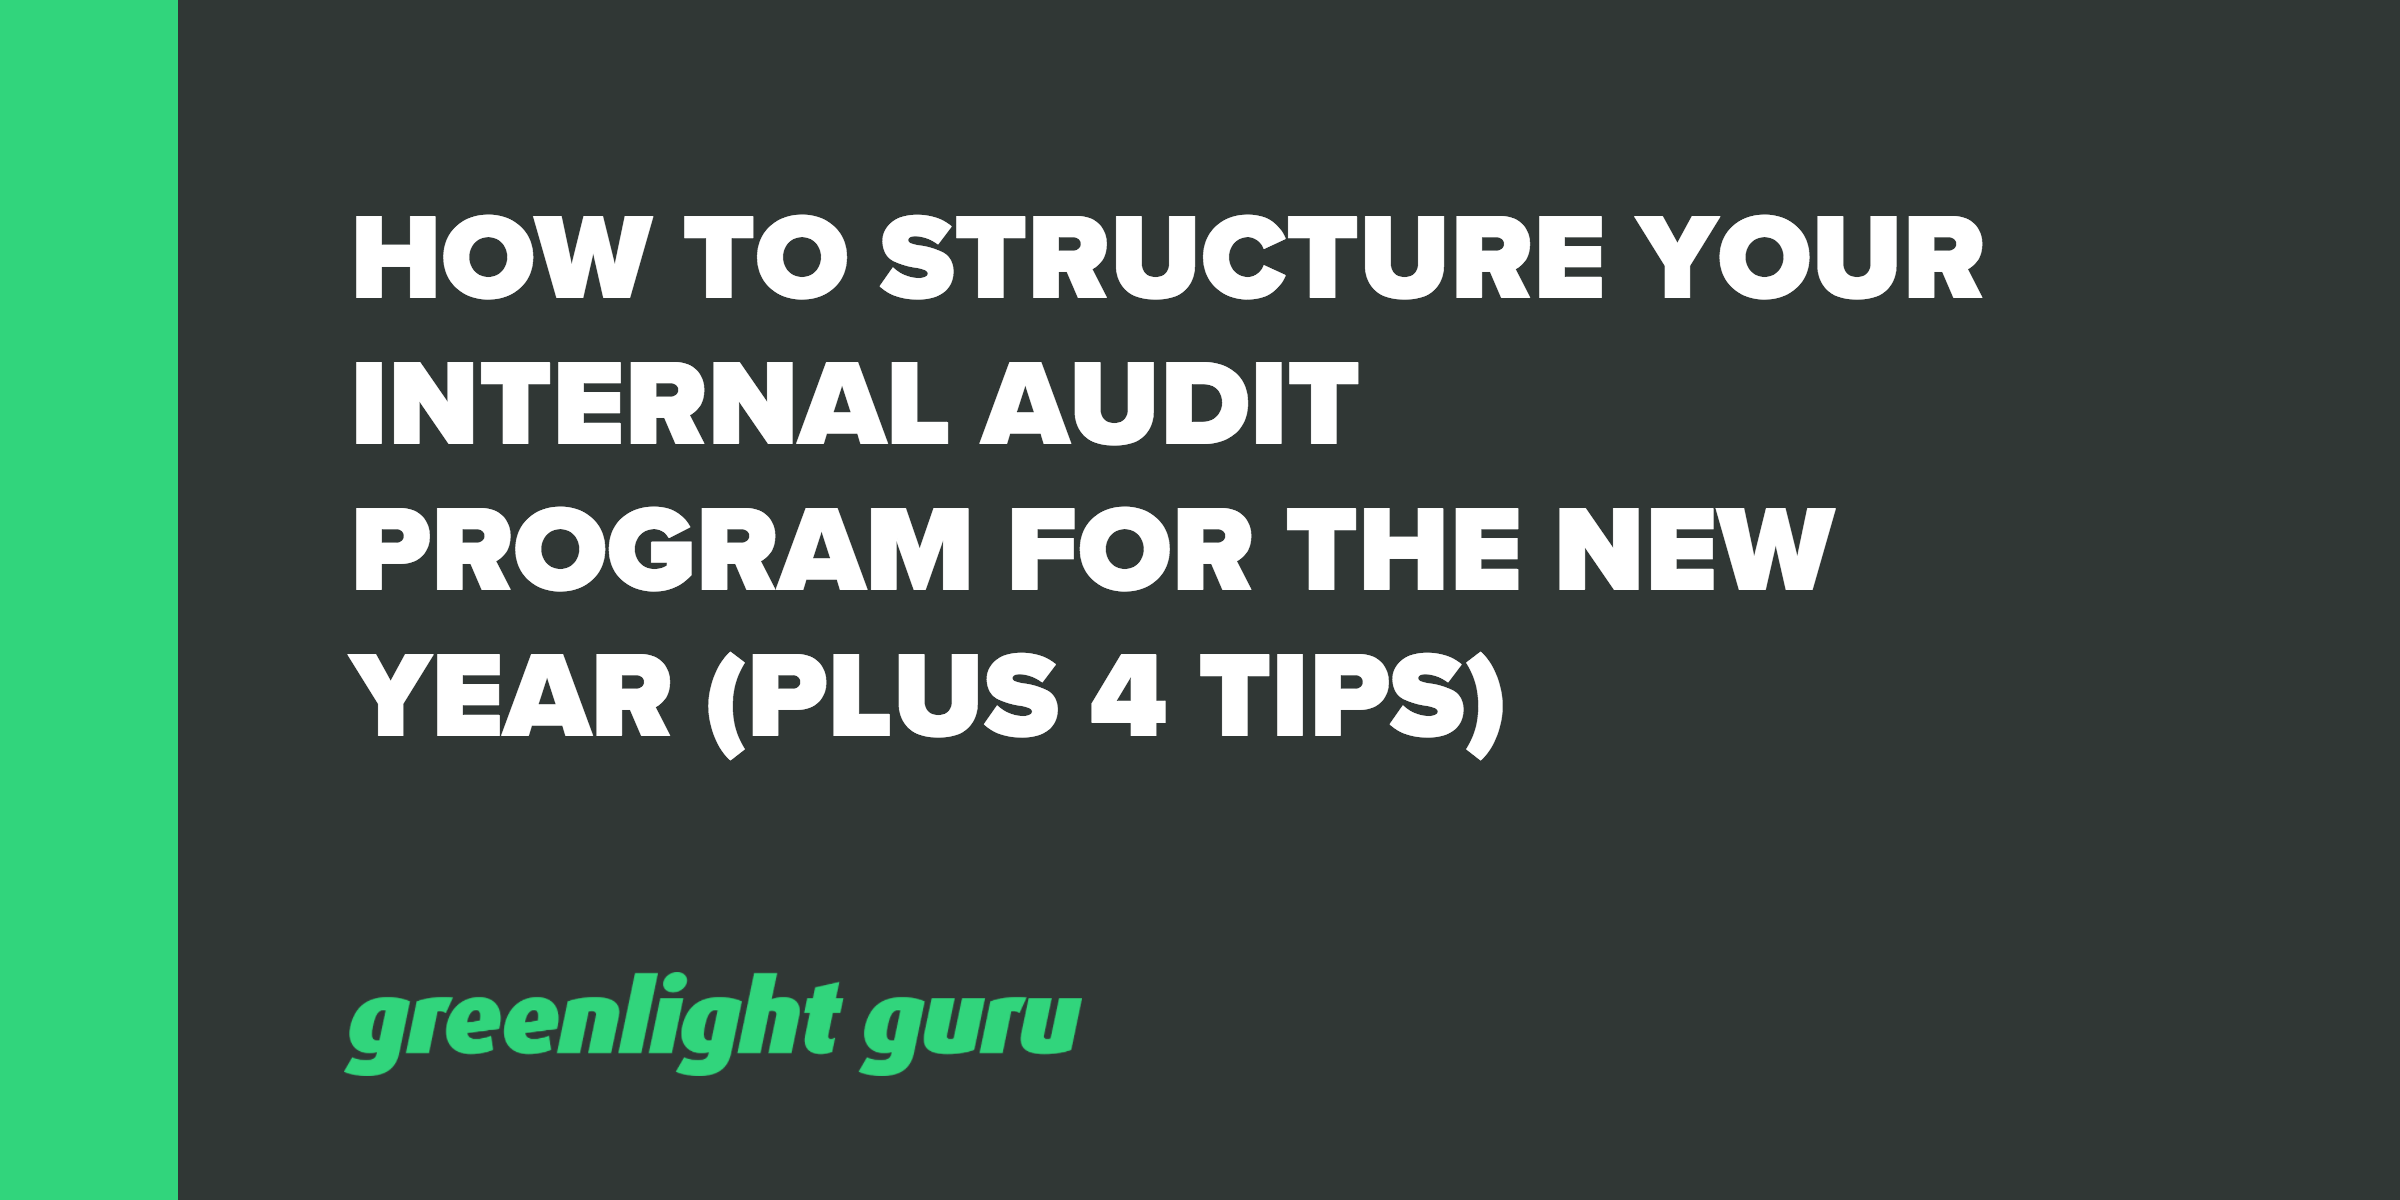 How to Structure Your Internal Audit Program for the New Year (Plus